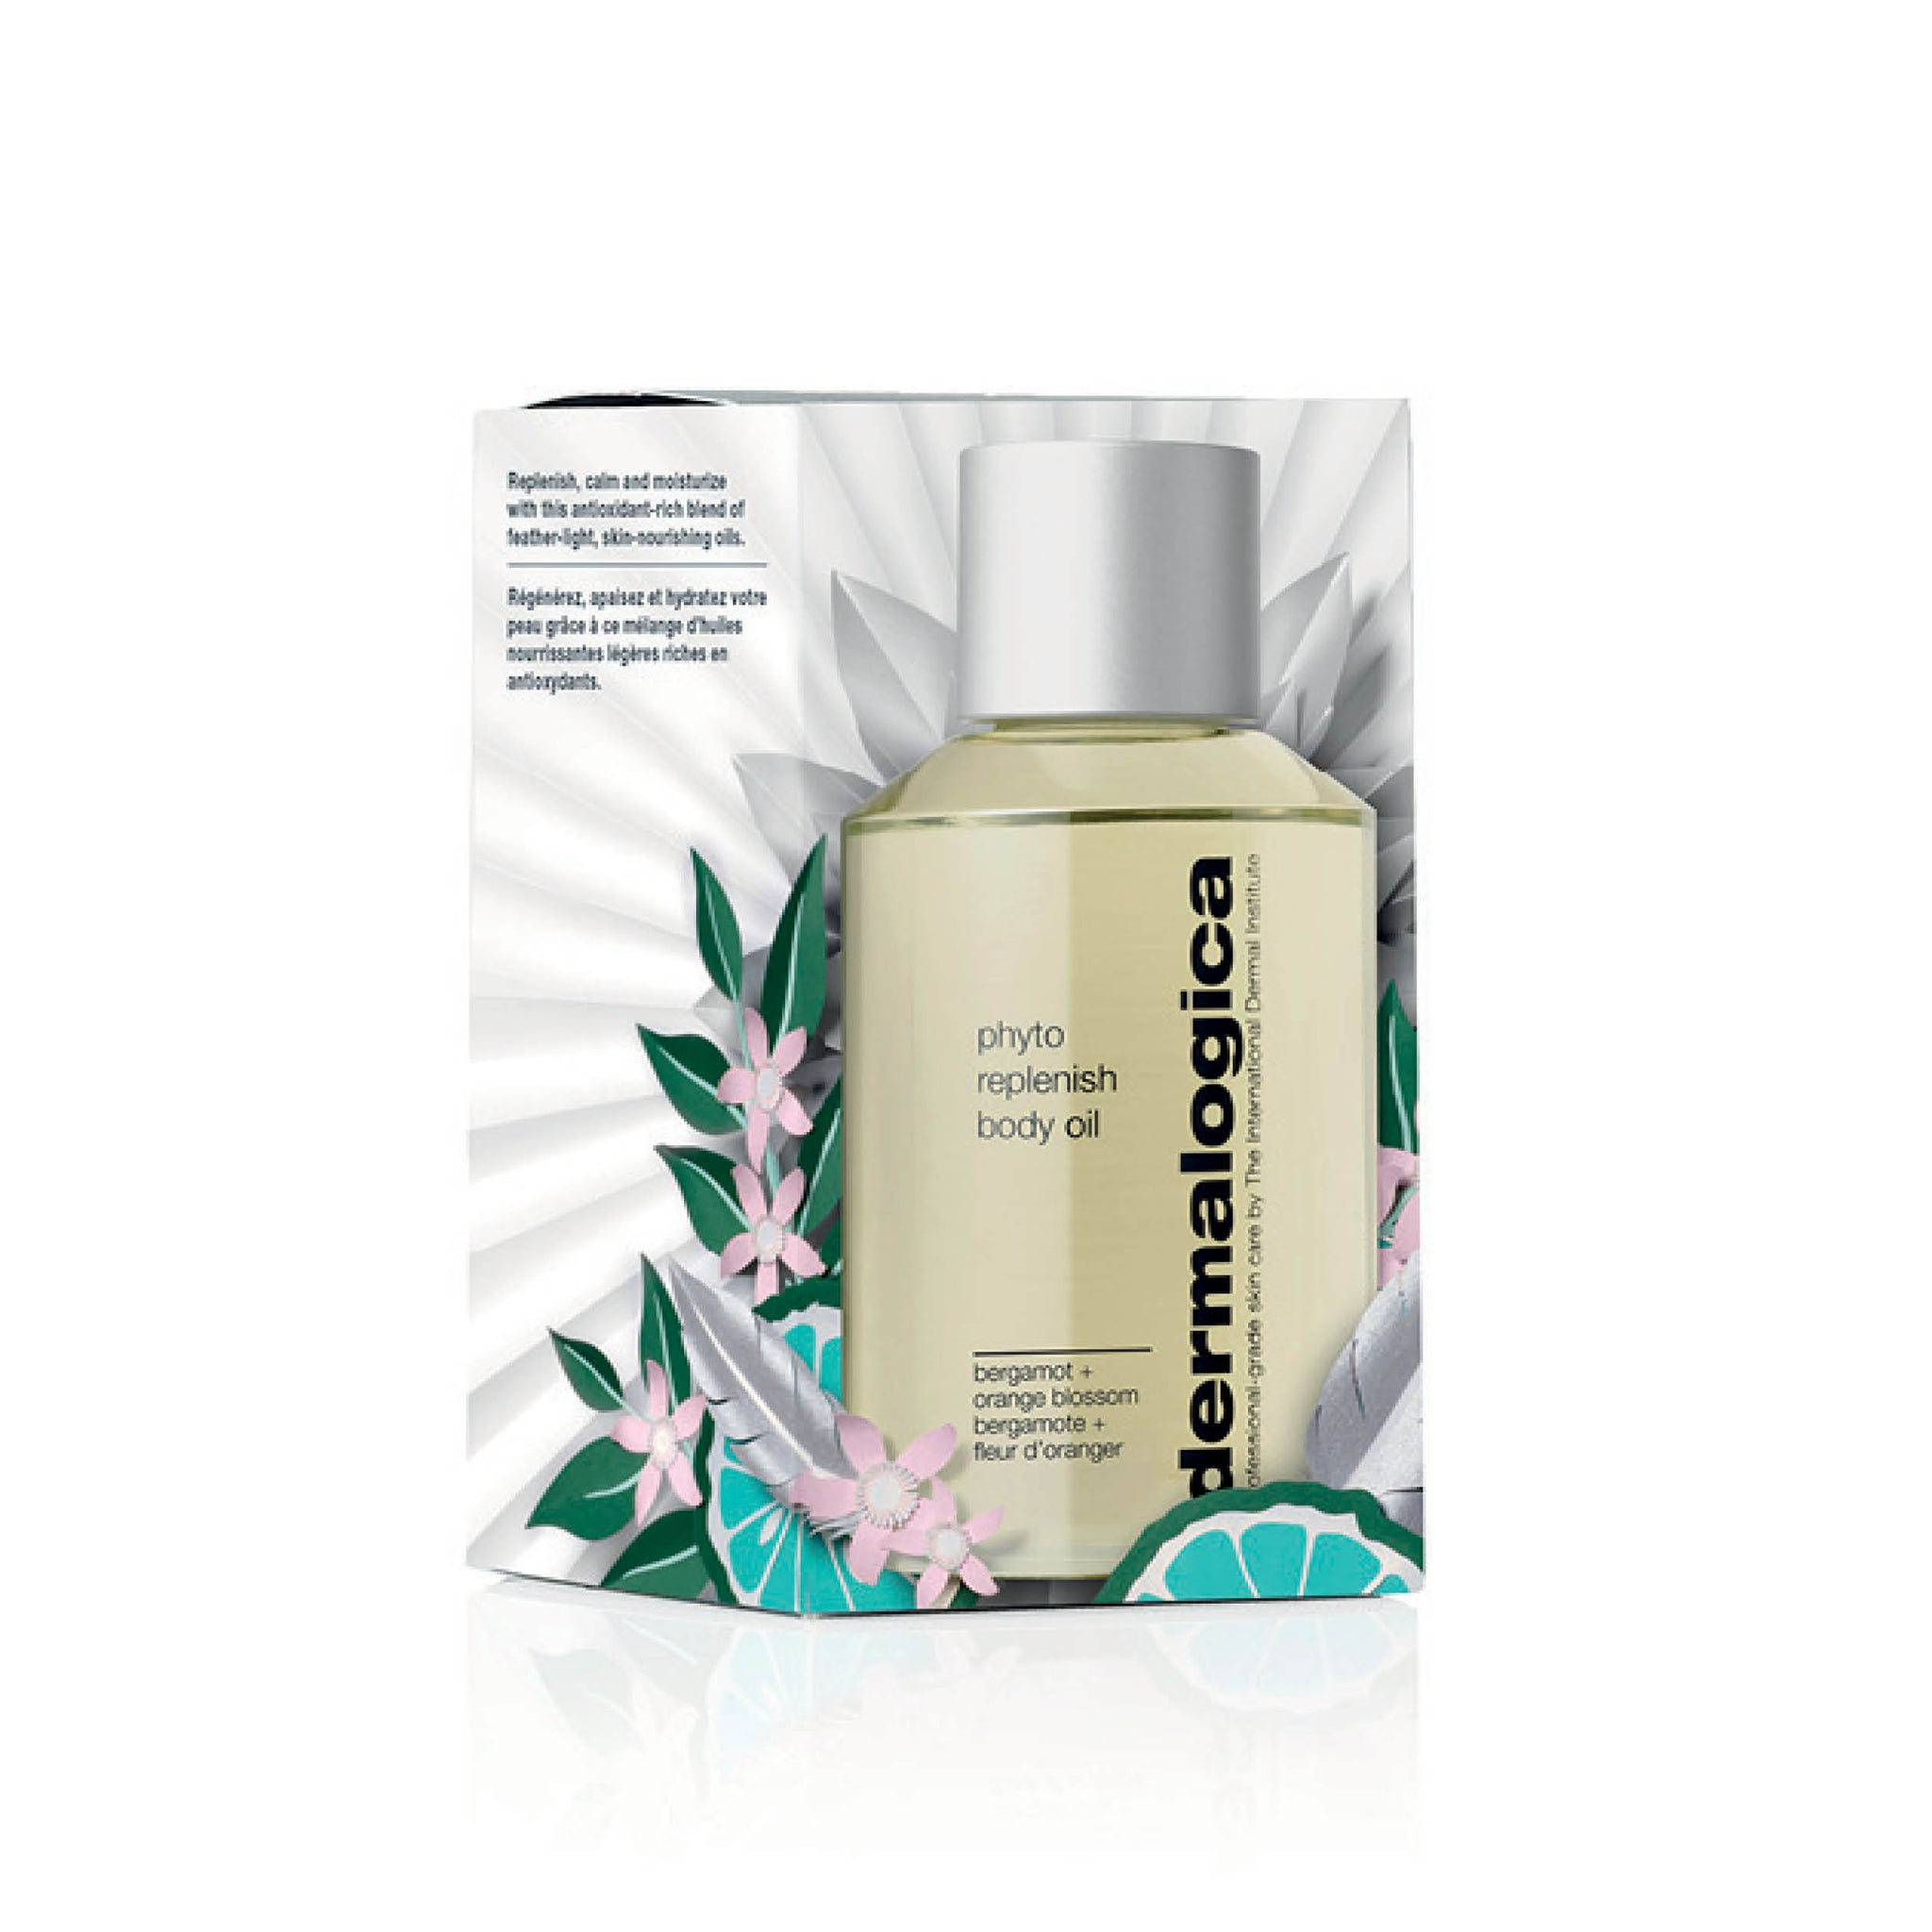 Dermalogica Phyto Replenish Body Oil Festive Edition 30ml